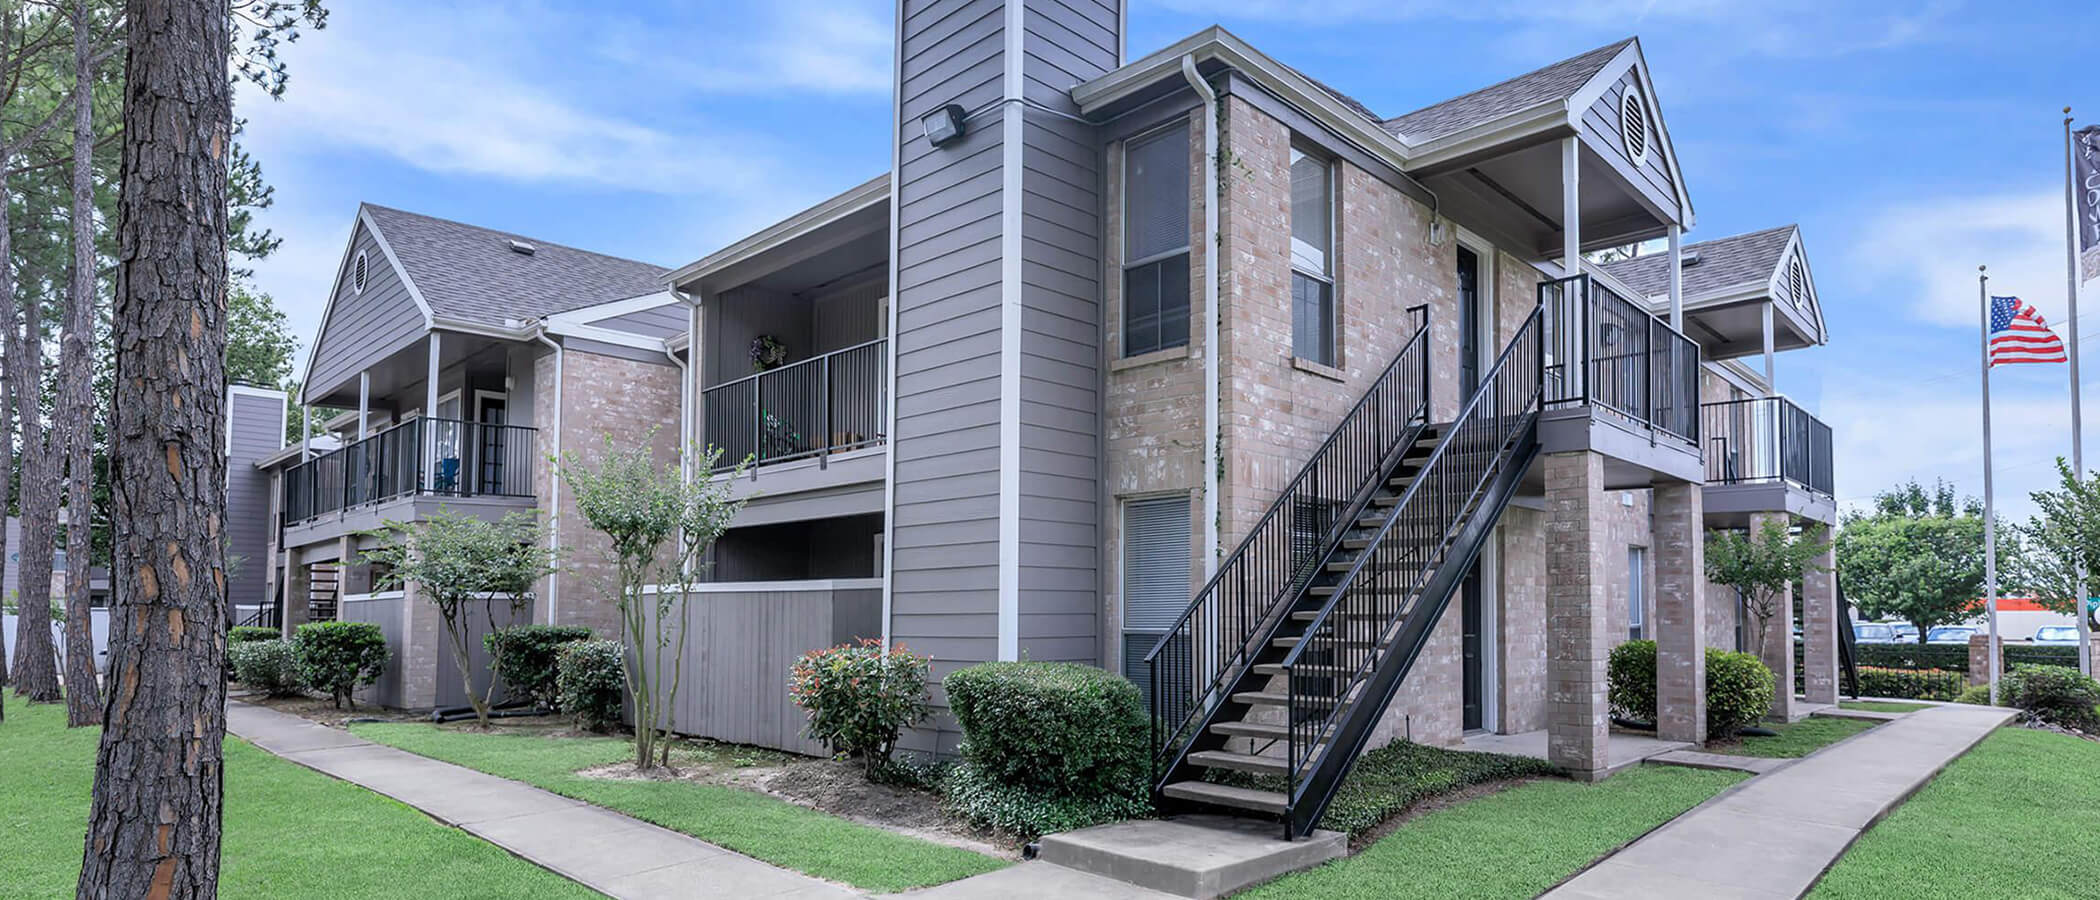 Cheap 2 Bedroom Apartments In Houston Tx Cheap 2 Bedroom Apartments In Houston Tx Cheap 2 Bedroom